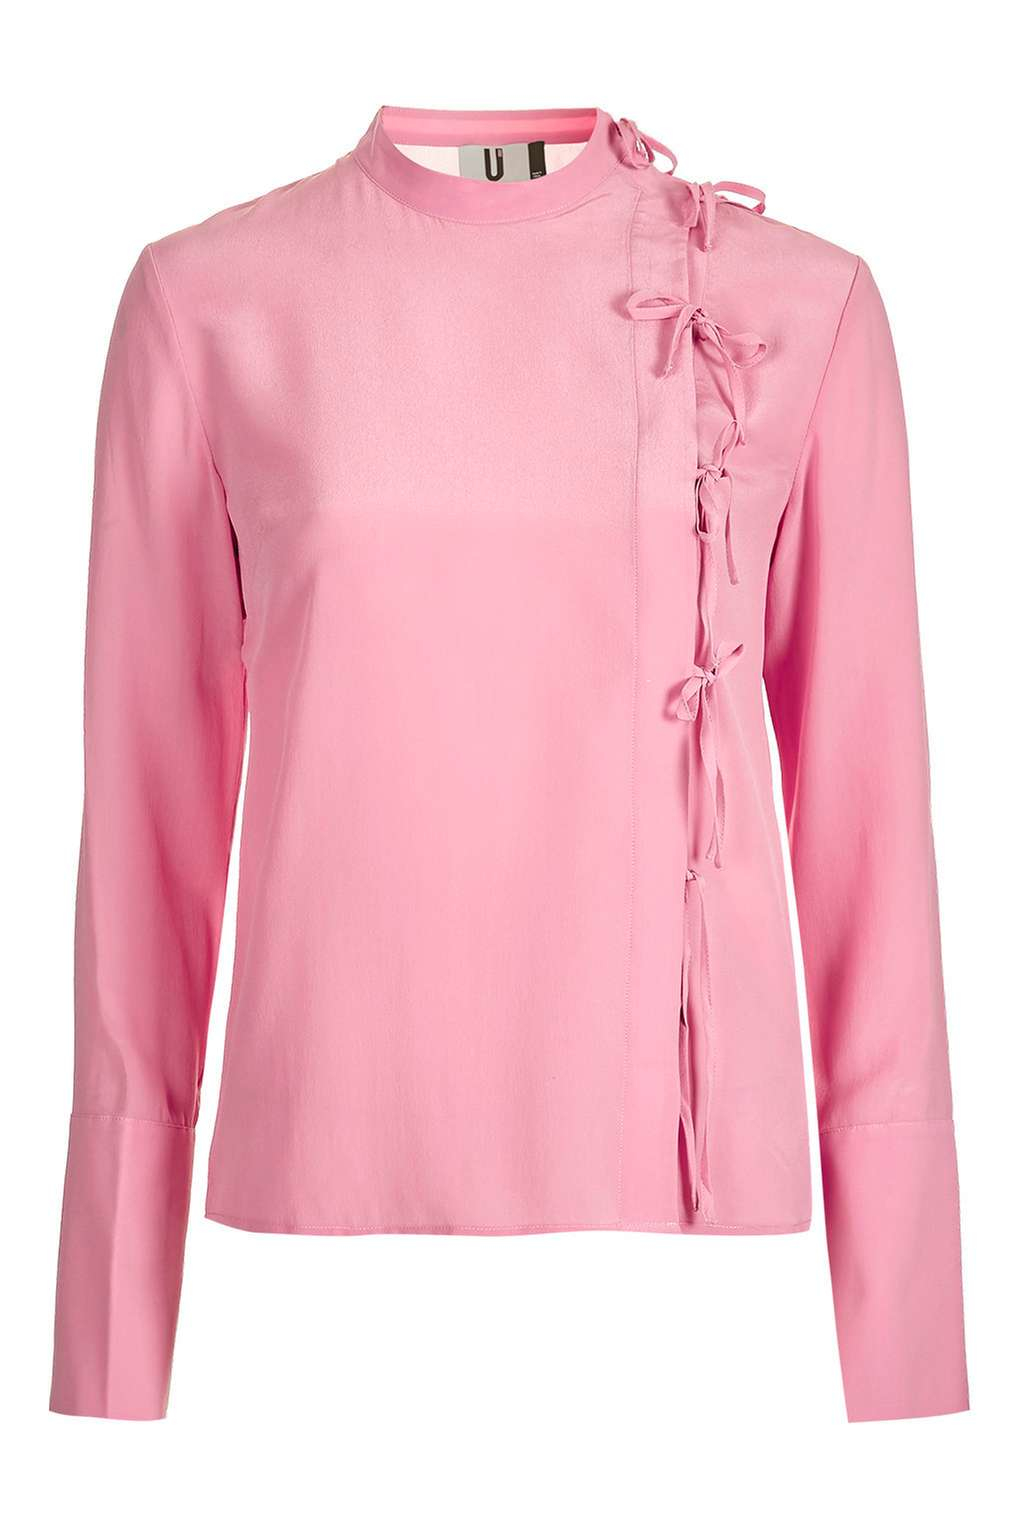 Candy Pink Blouse 23